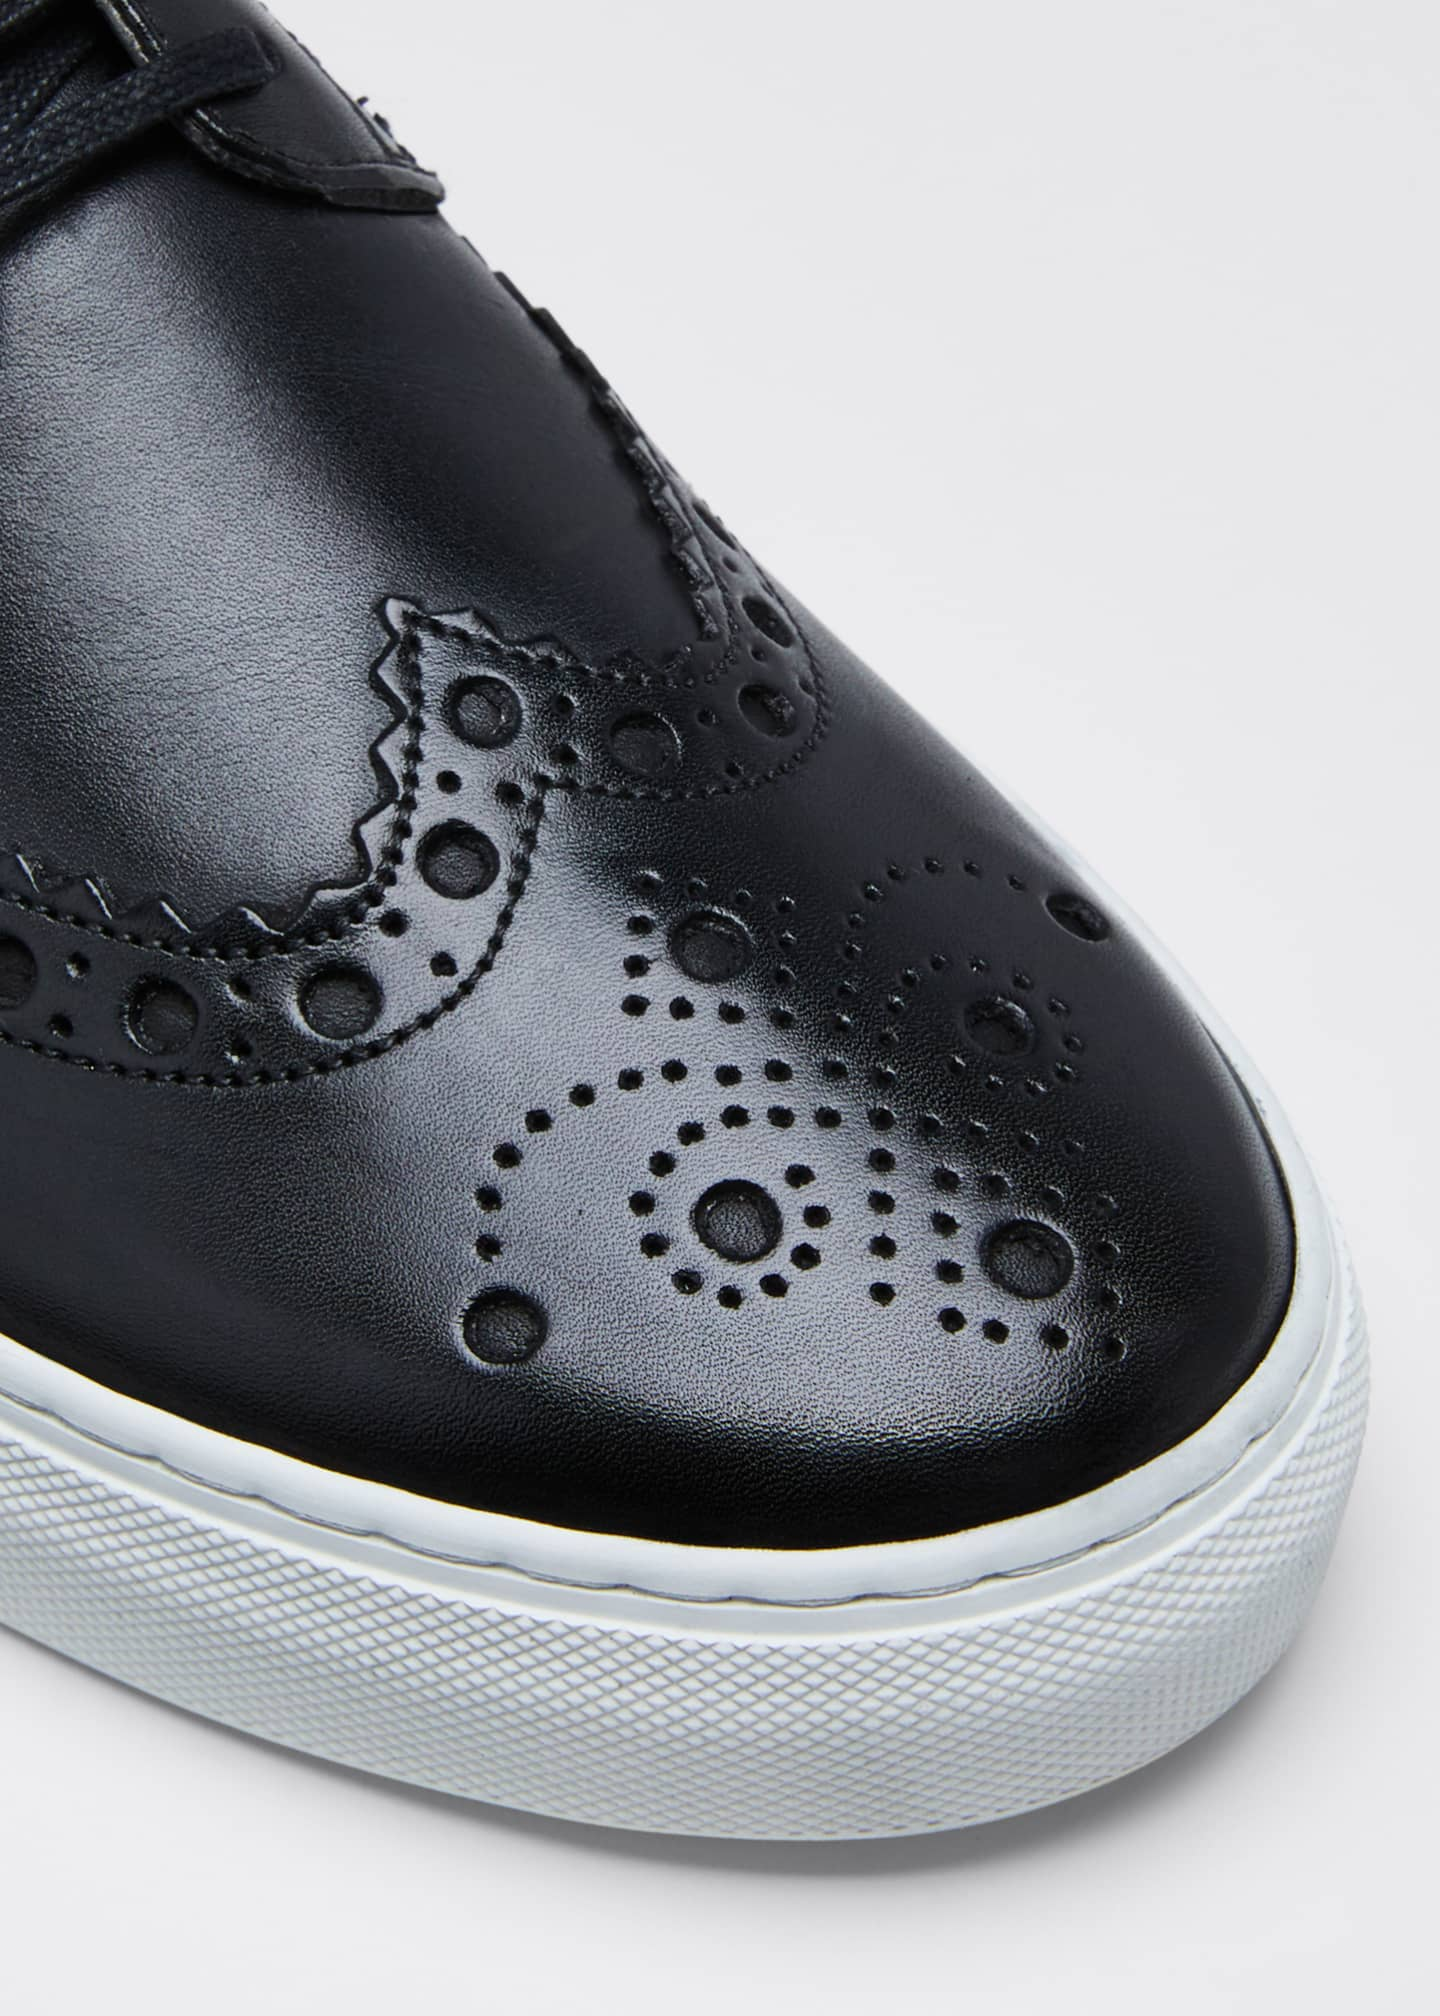 Image 3 of 3: Men's Brogue Leather Sneakers